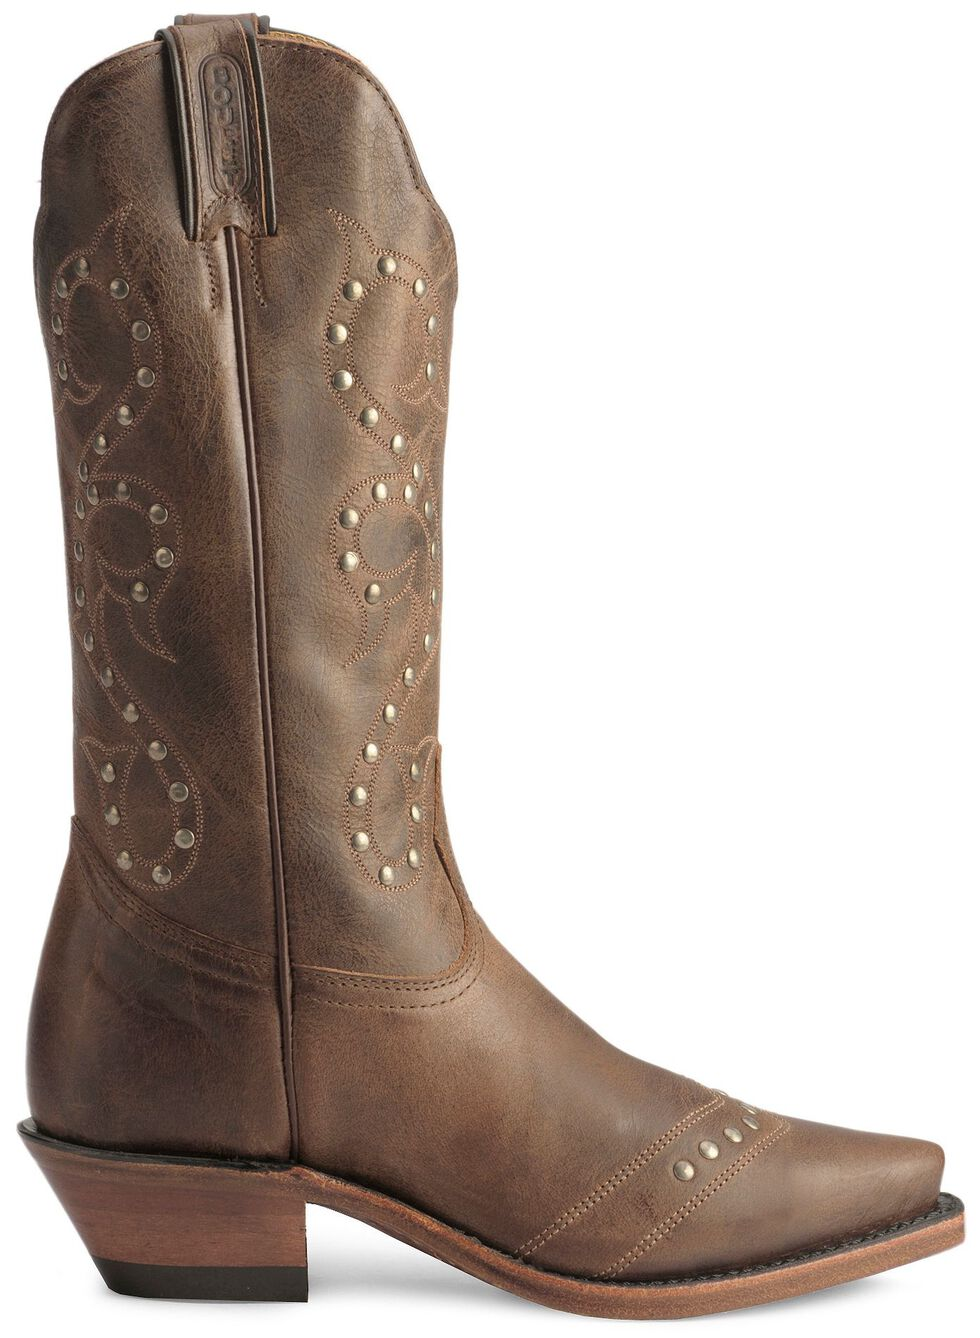 Boulet Studded & Distressed Leather Cowgirl Boots - Snip Toe, Tan, hi-res